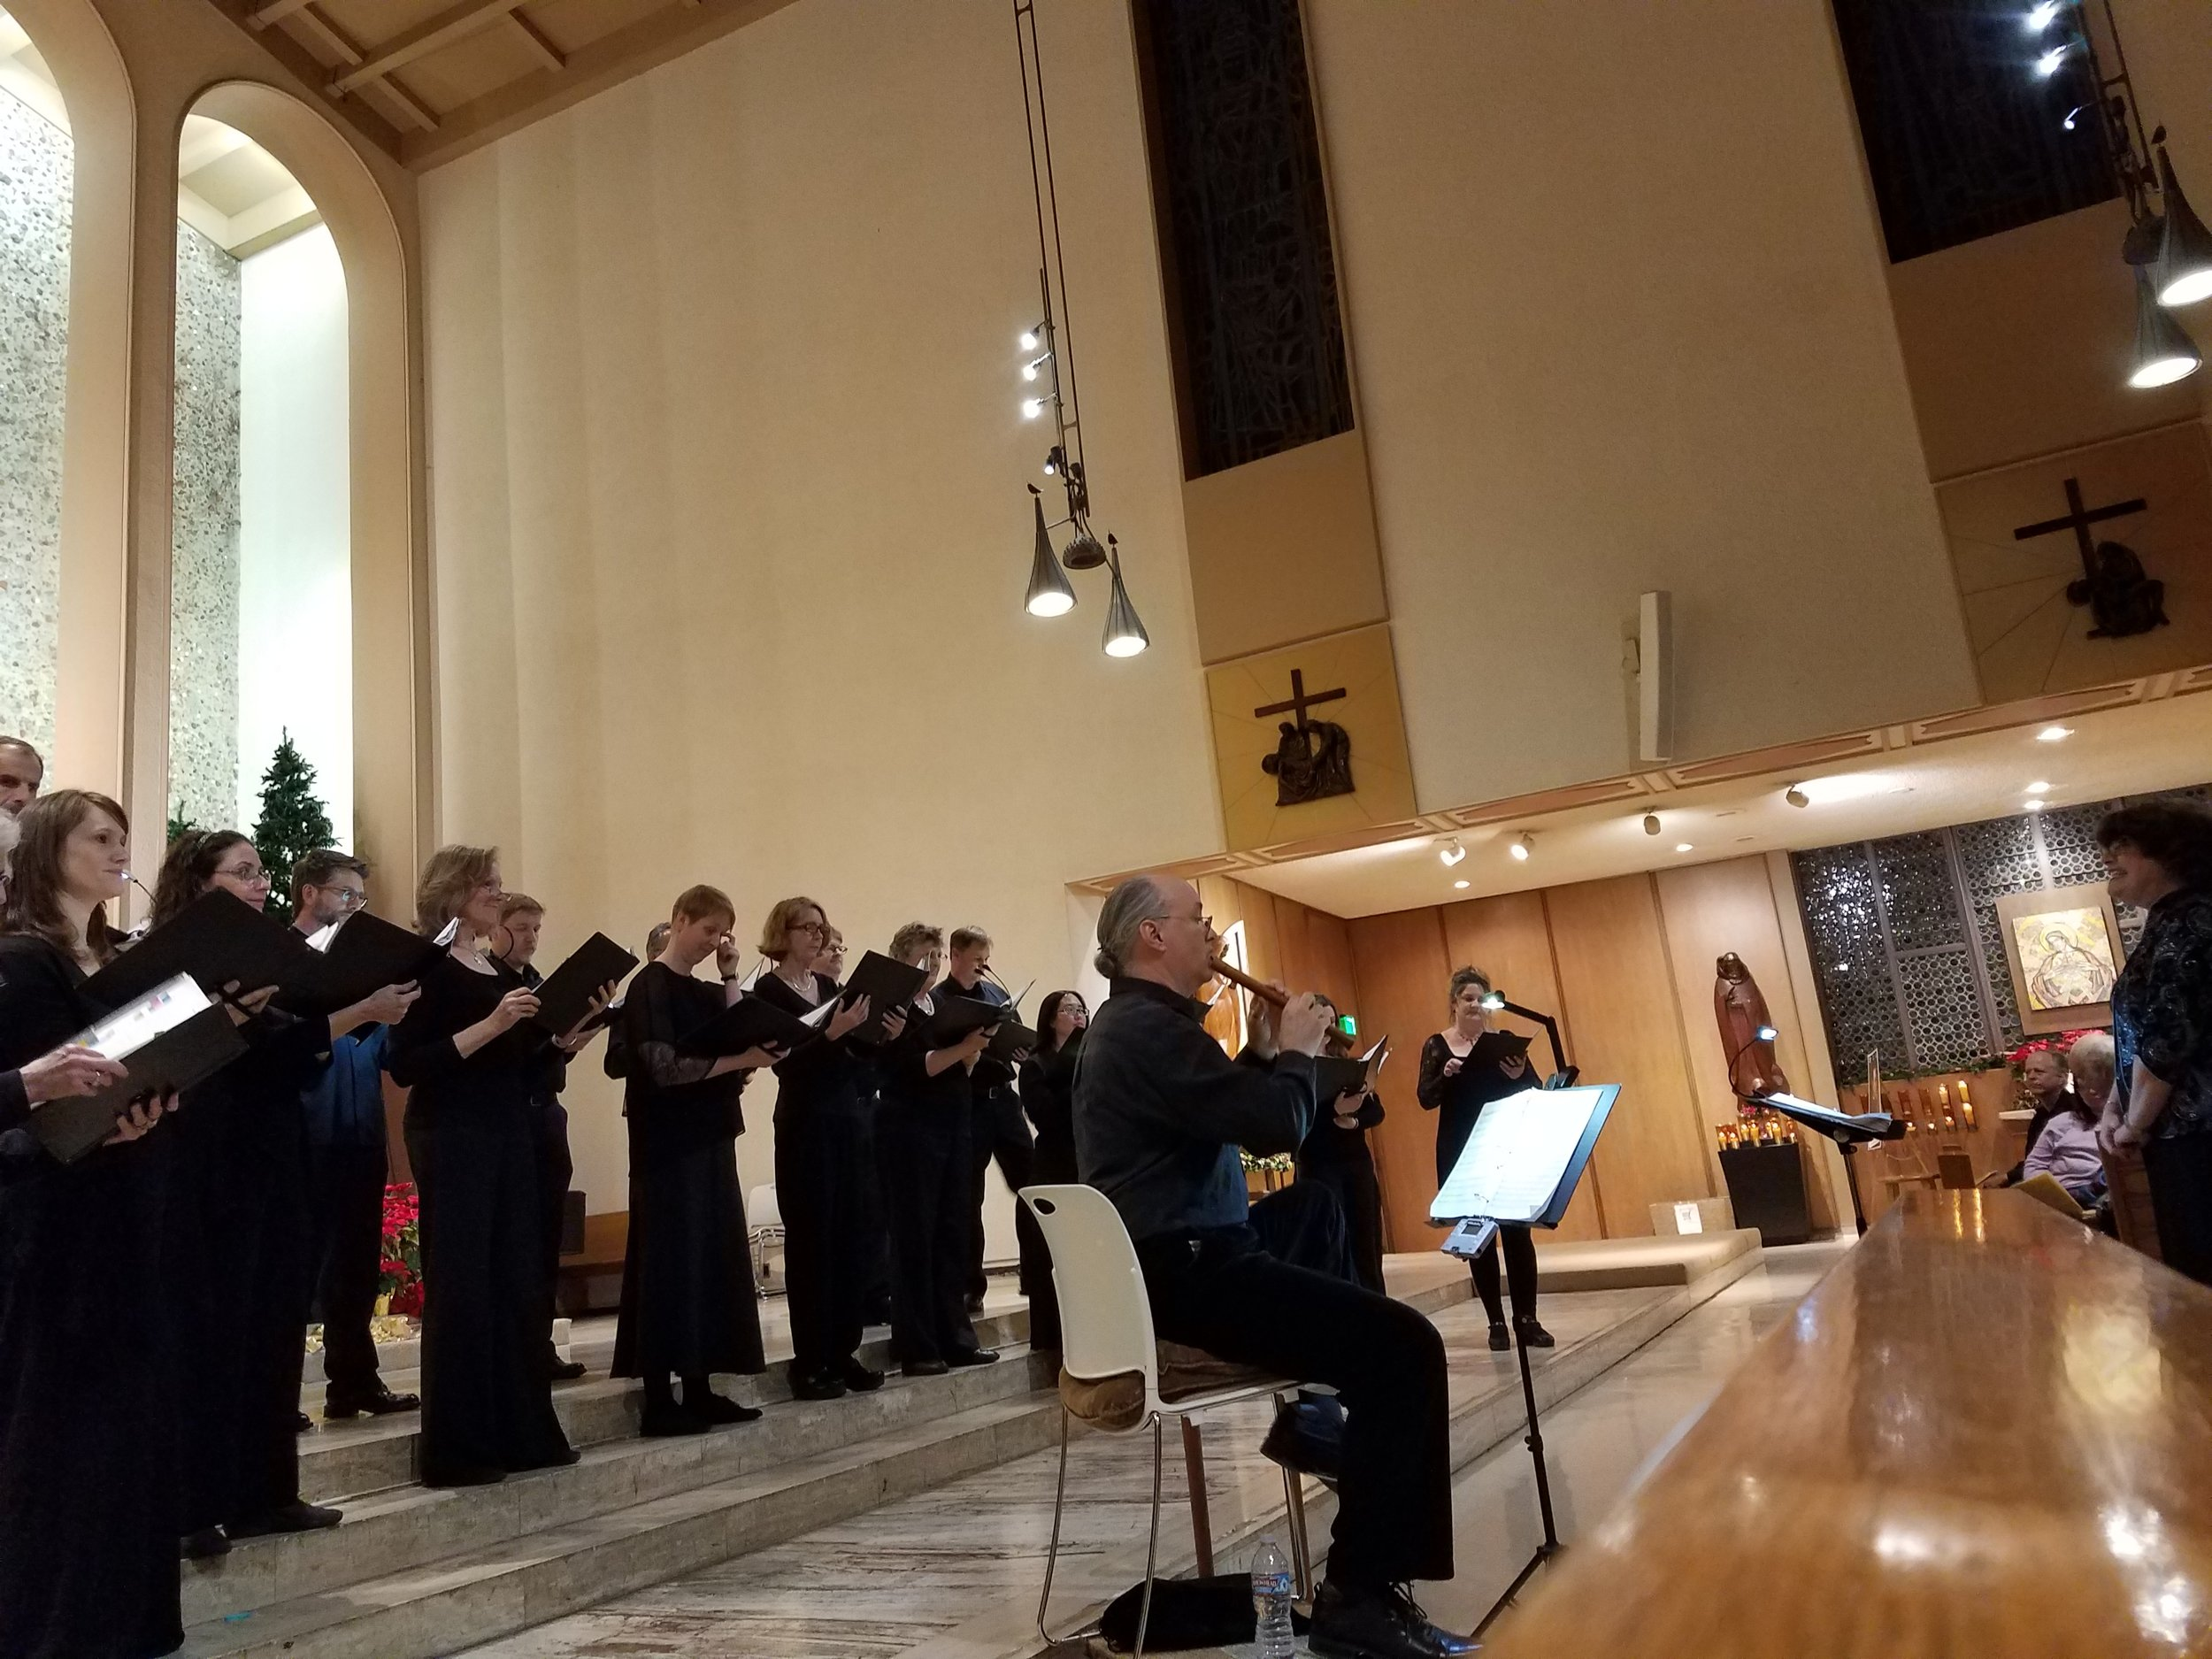 Jouyssance performing their first concert at St. Paul the Apostle Catholic Church in Westwood. Bruce Teter accompanies on recorder.